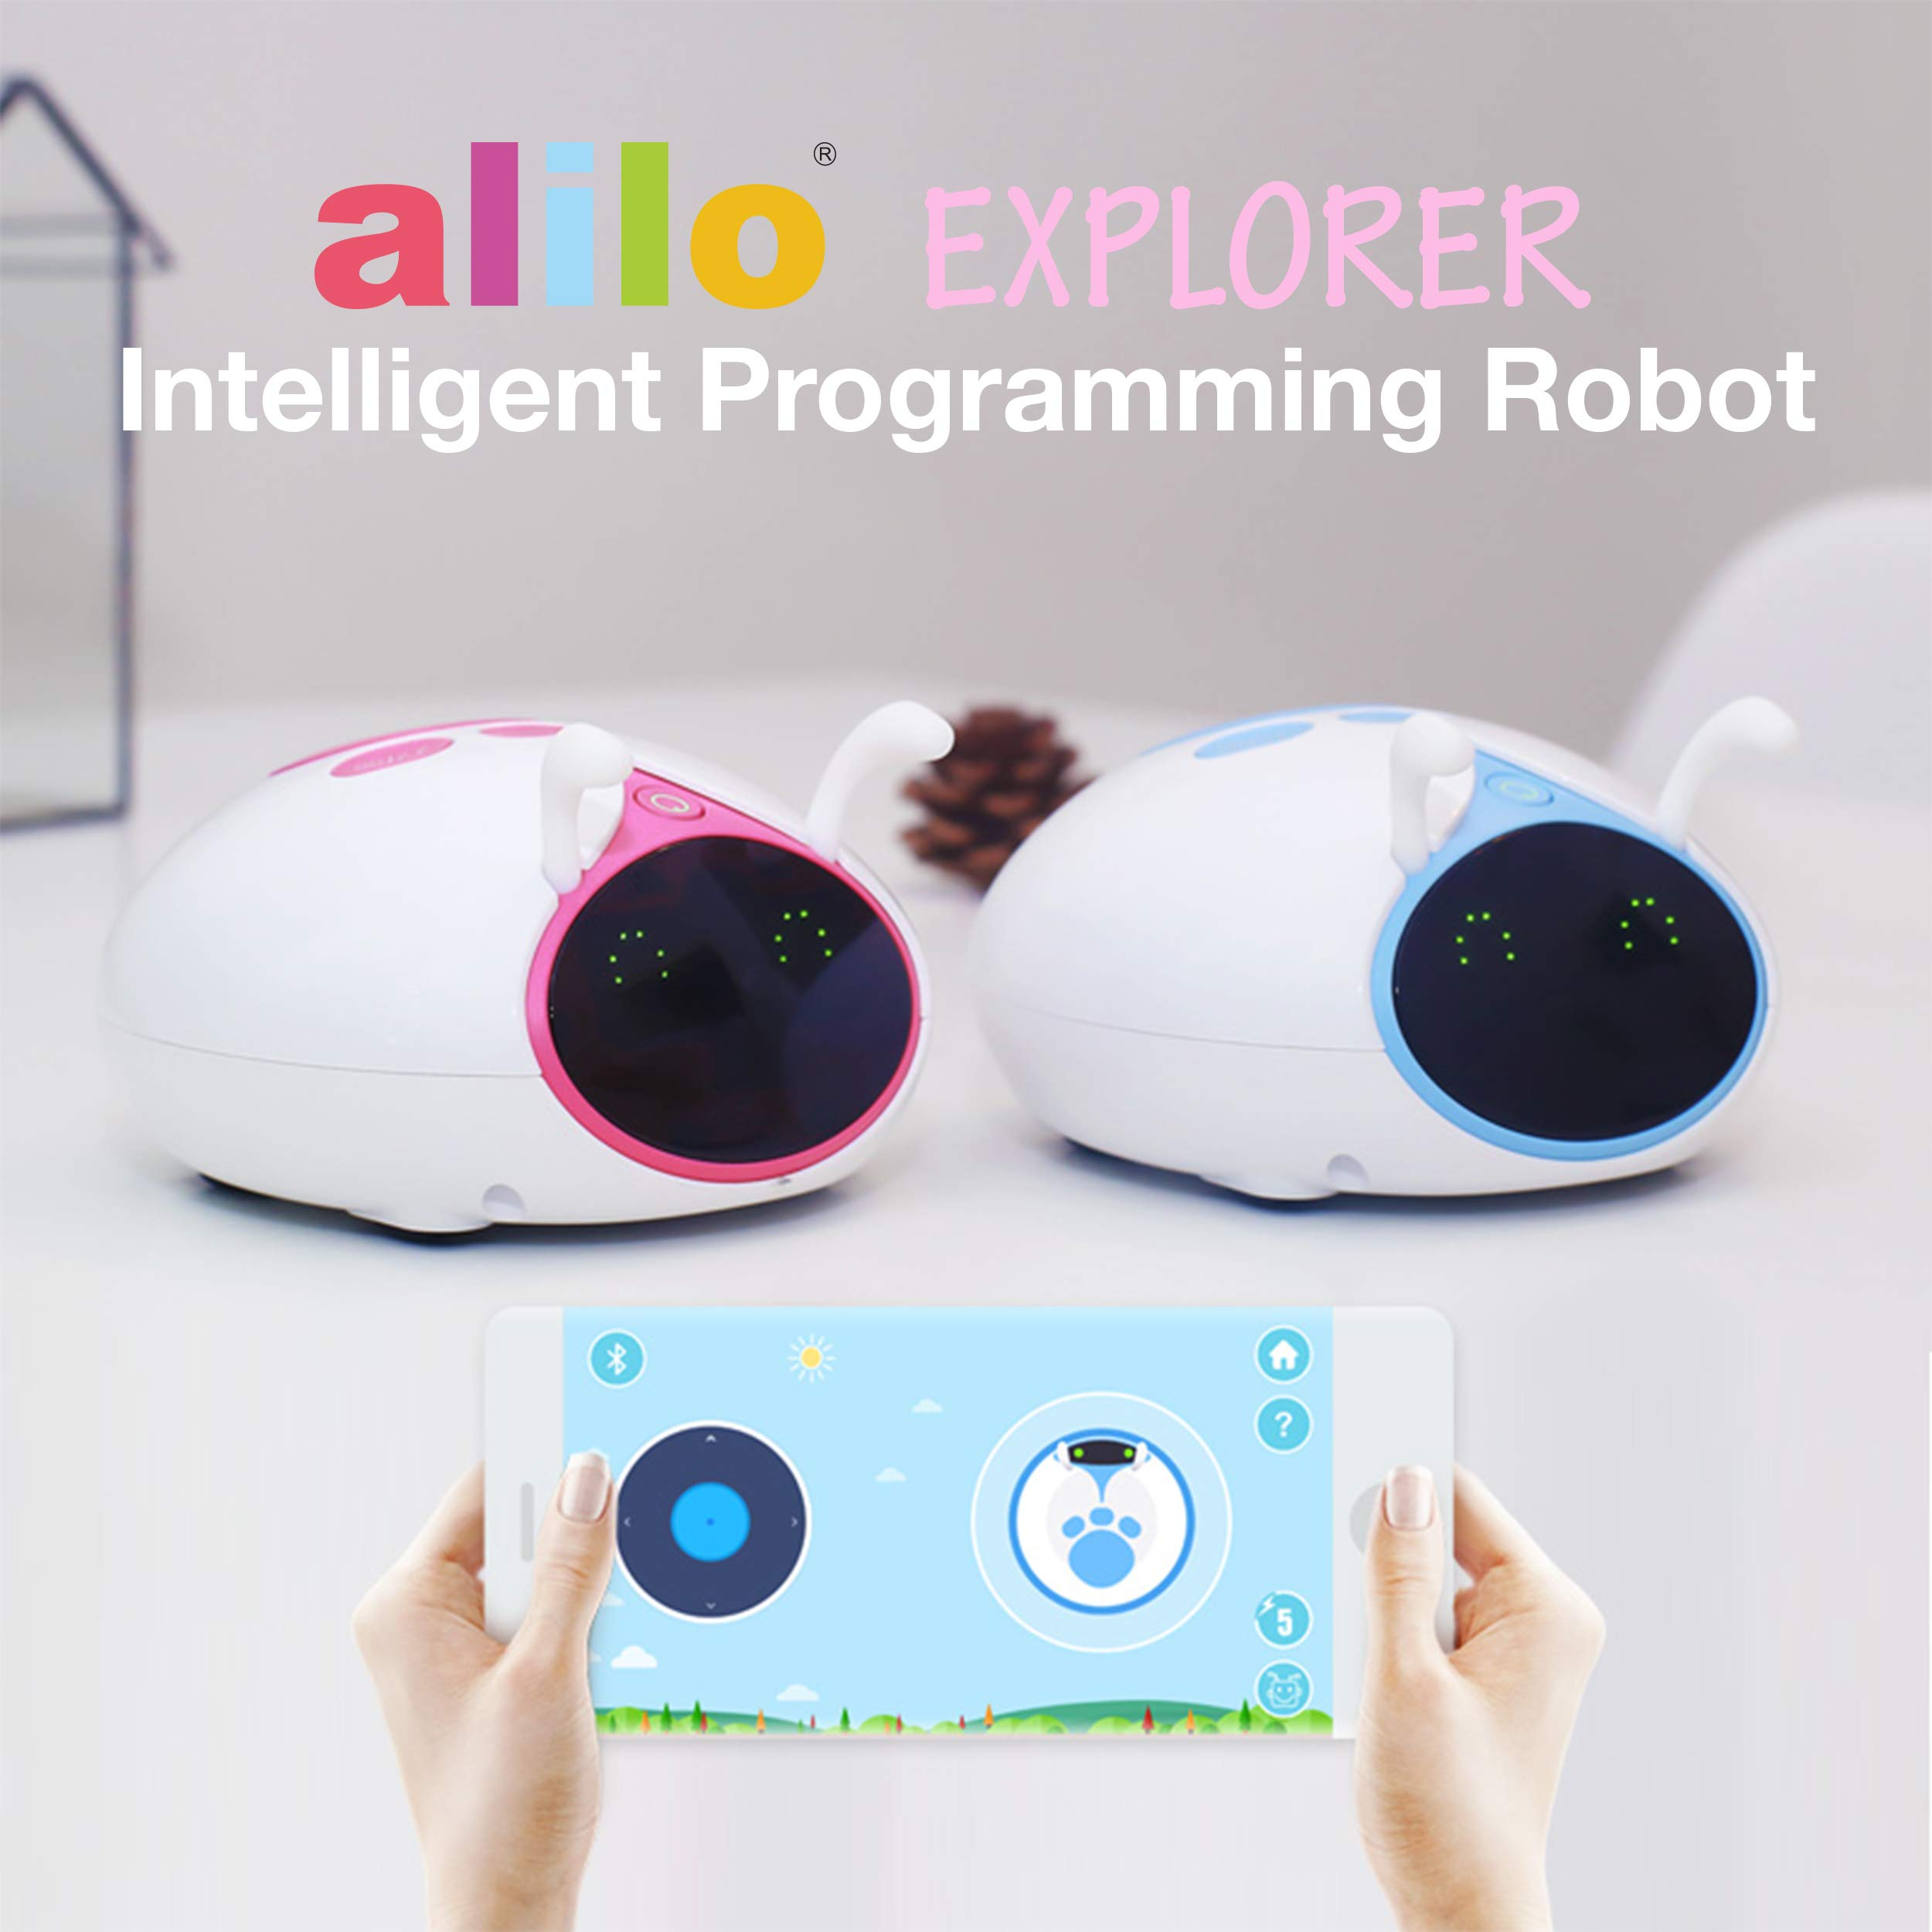 Alilo Blocky Scratch Drag and Drop Programming Language Visual Swift Coding Editor Robot STEM Learning Education Kids Toy Interactive Intelligent Robotic Play with 6 Modes, Battery, M7 Explorer (Red) by alilo (Image #2)